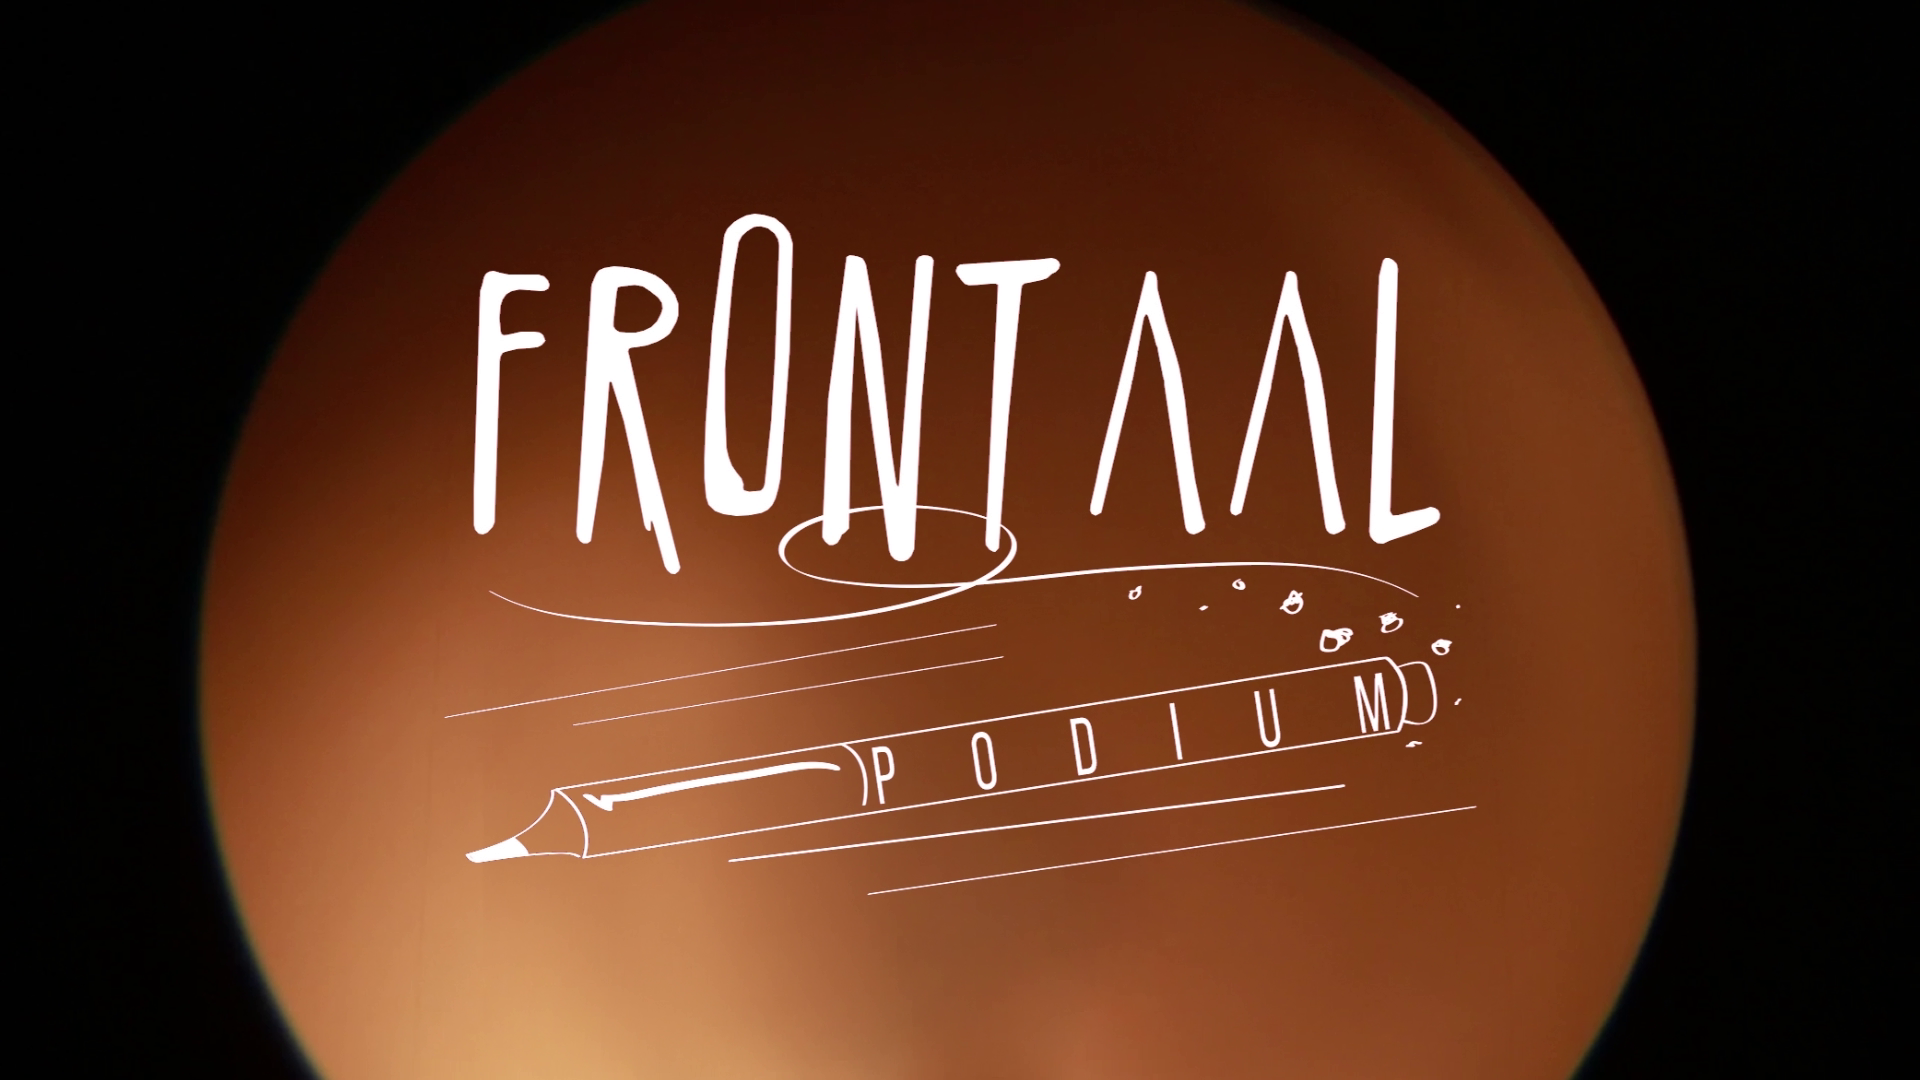 Frontaal #2_0